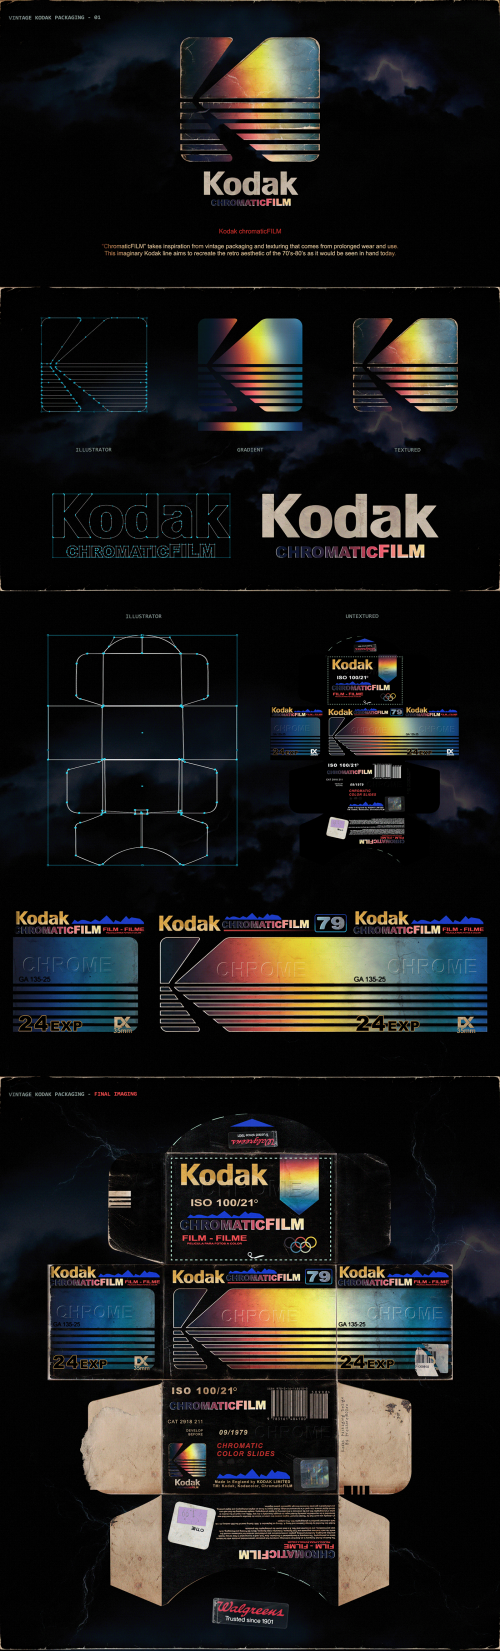 Kodak Chromatic FILM Logo and Packaging Design